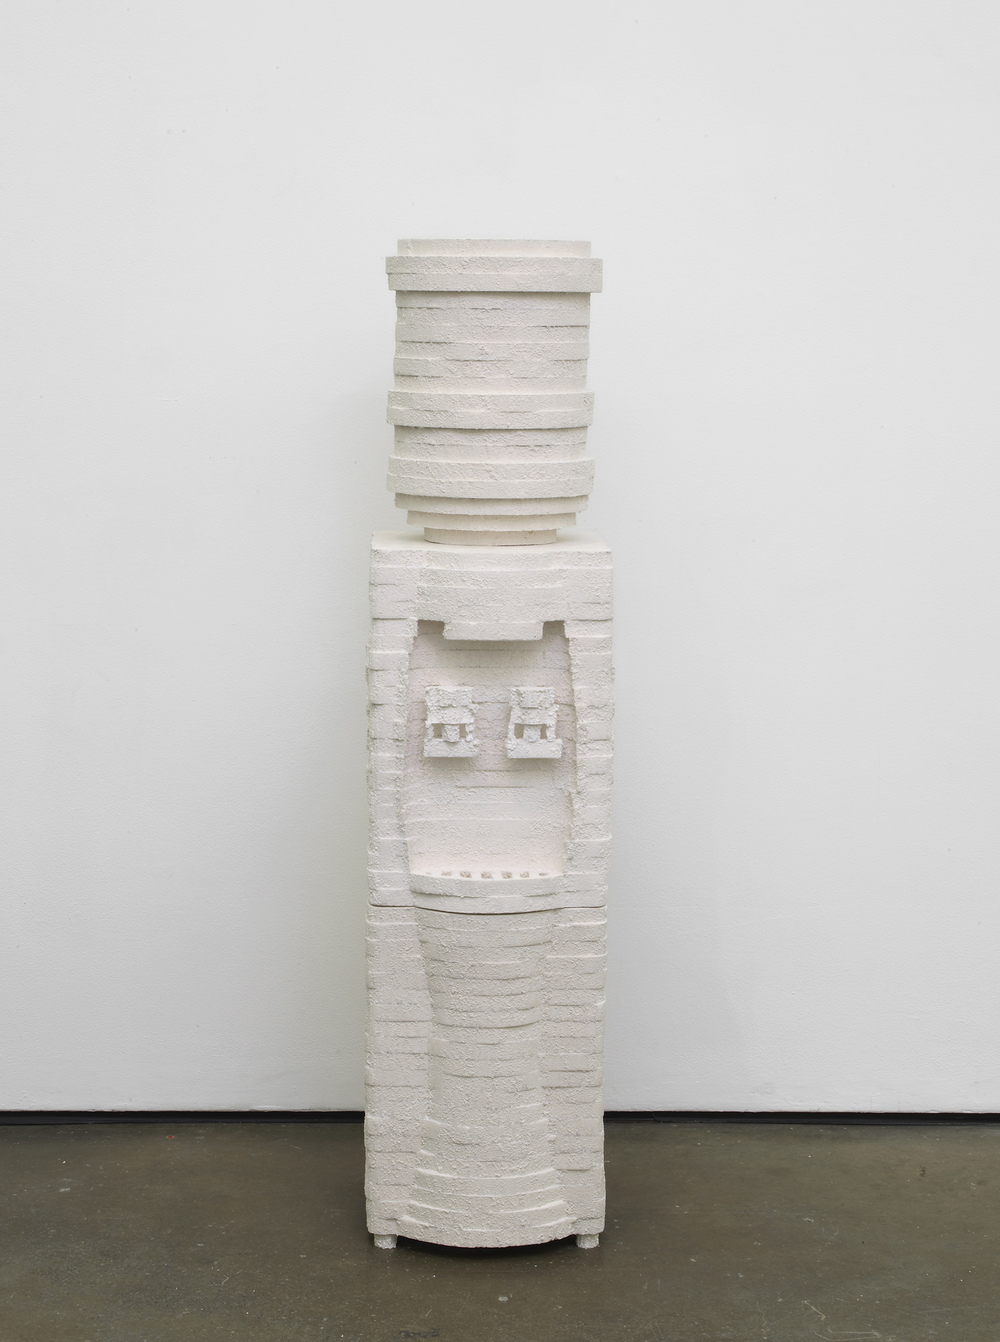 Water Cooler  2014  Plaster  145 x 34 x 37 cm / 57 x 13.3 x 14.5 in